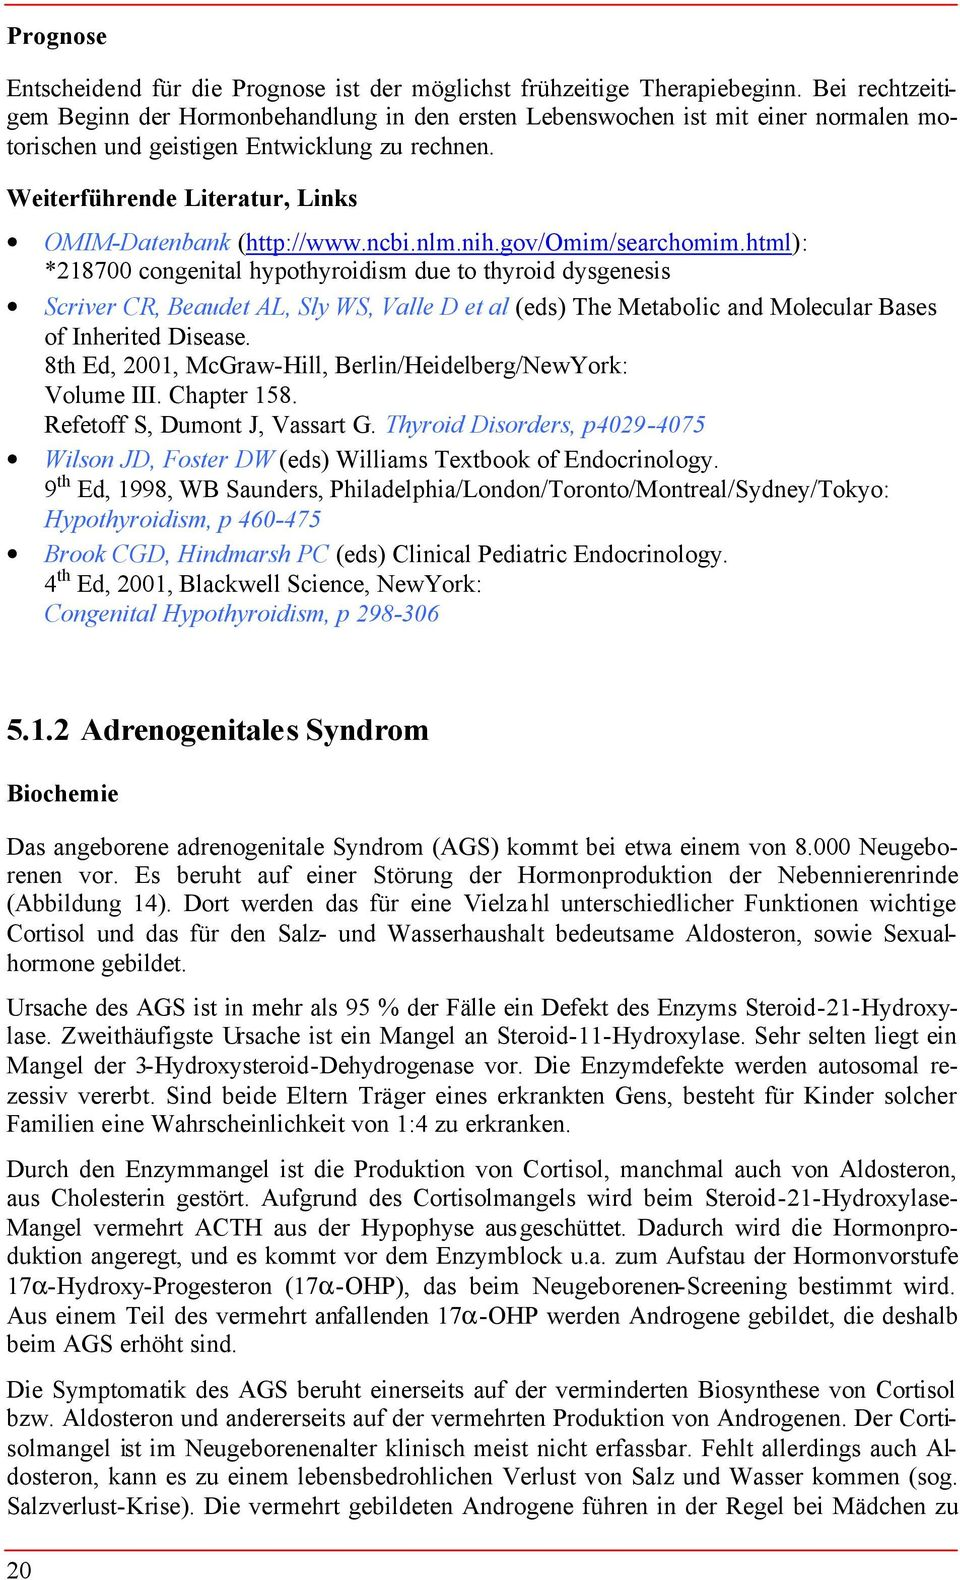 Weiterführende Literatur, Links OMIM-Datenbank (http://www.ncbi.nlm.nih.gov/omim/searchomim.